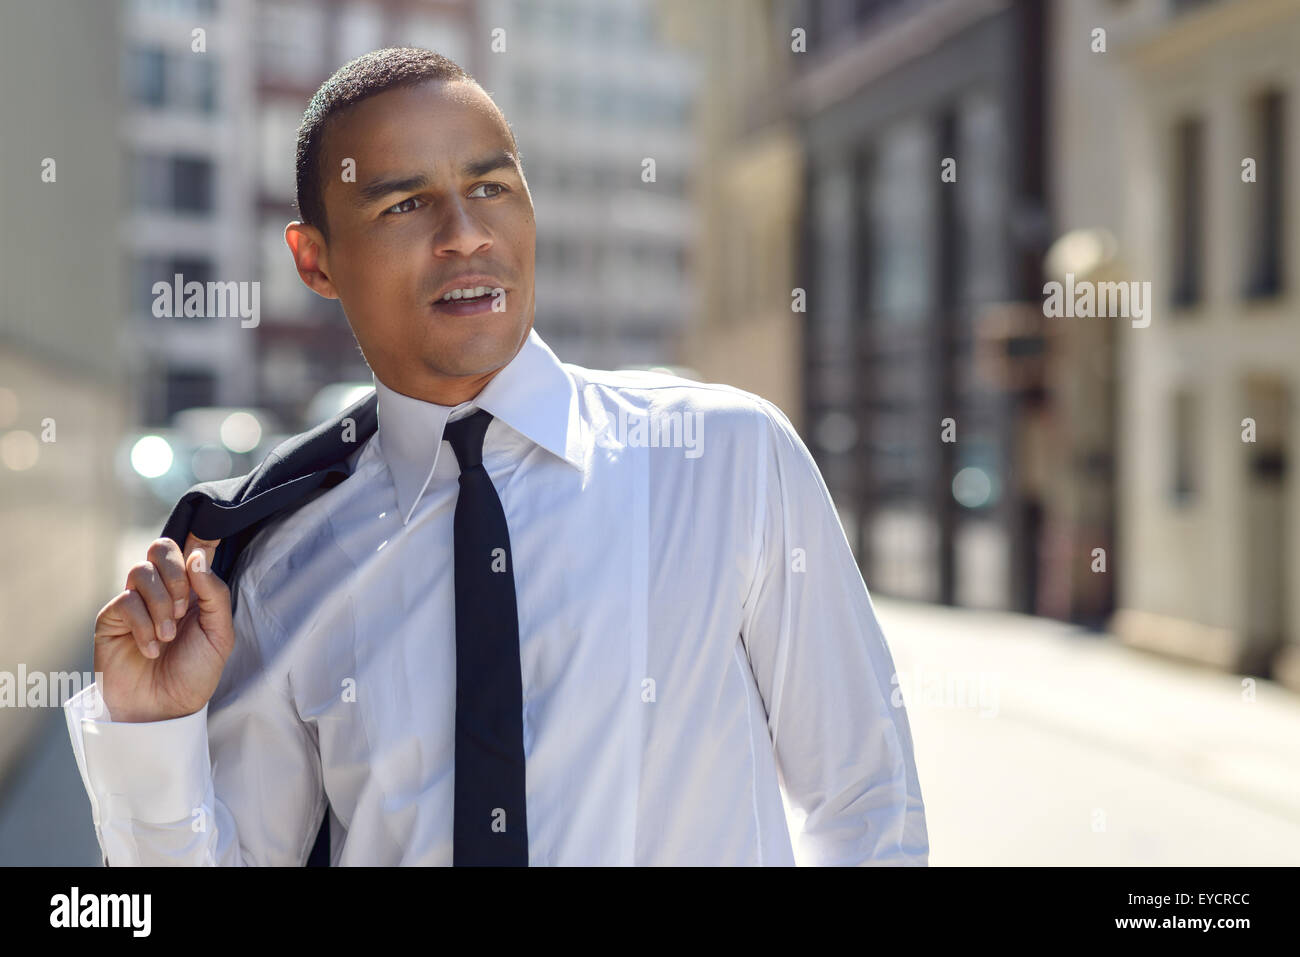 Handsome businessman walking in an urban street with his suit jacket slung over his shoulder as he looks up at the - Stock Image